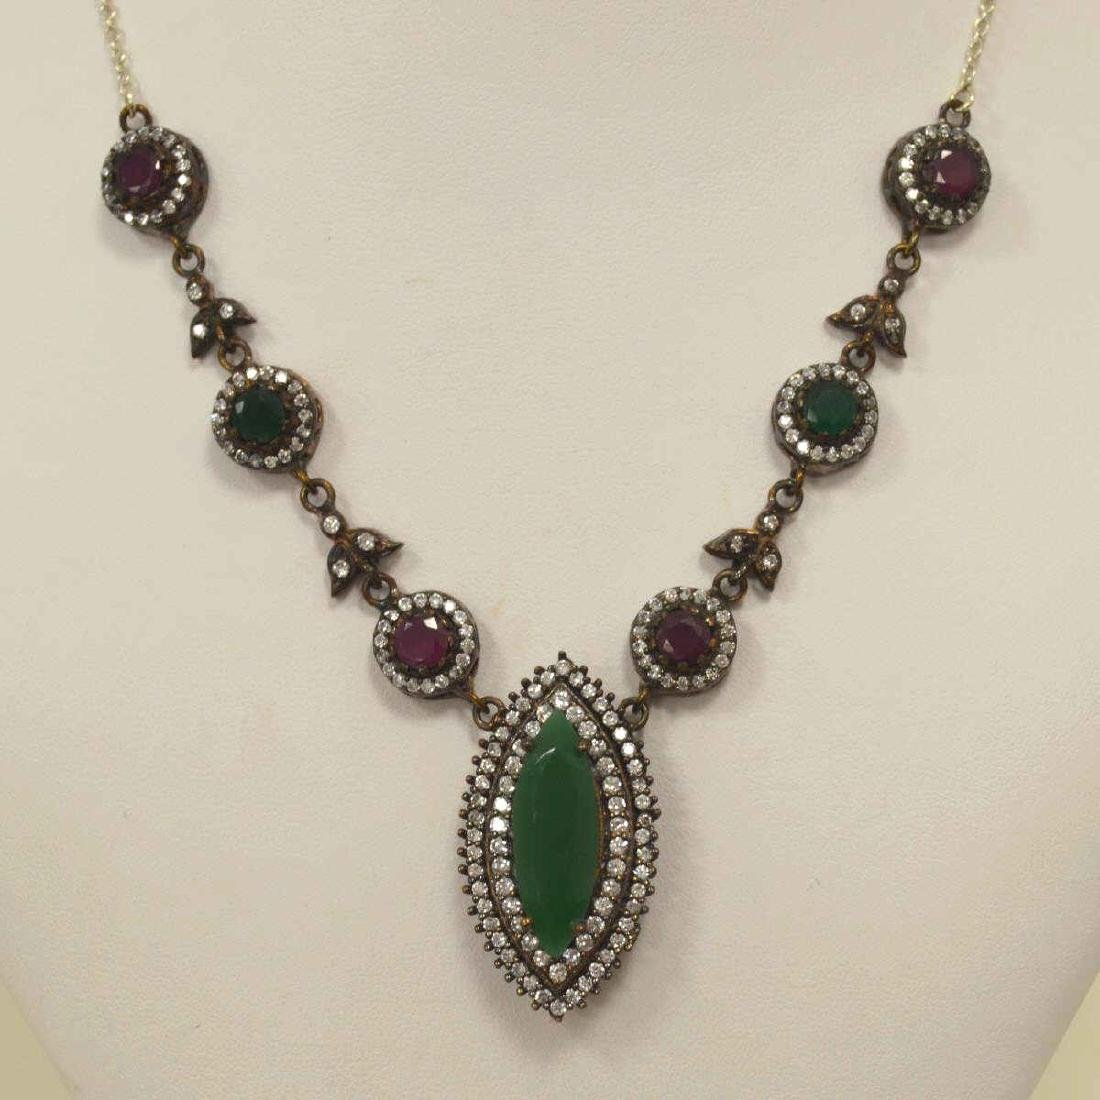 Sterling silver green and red stone necklace - 2